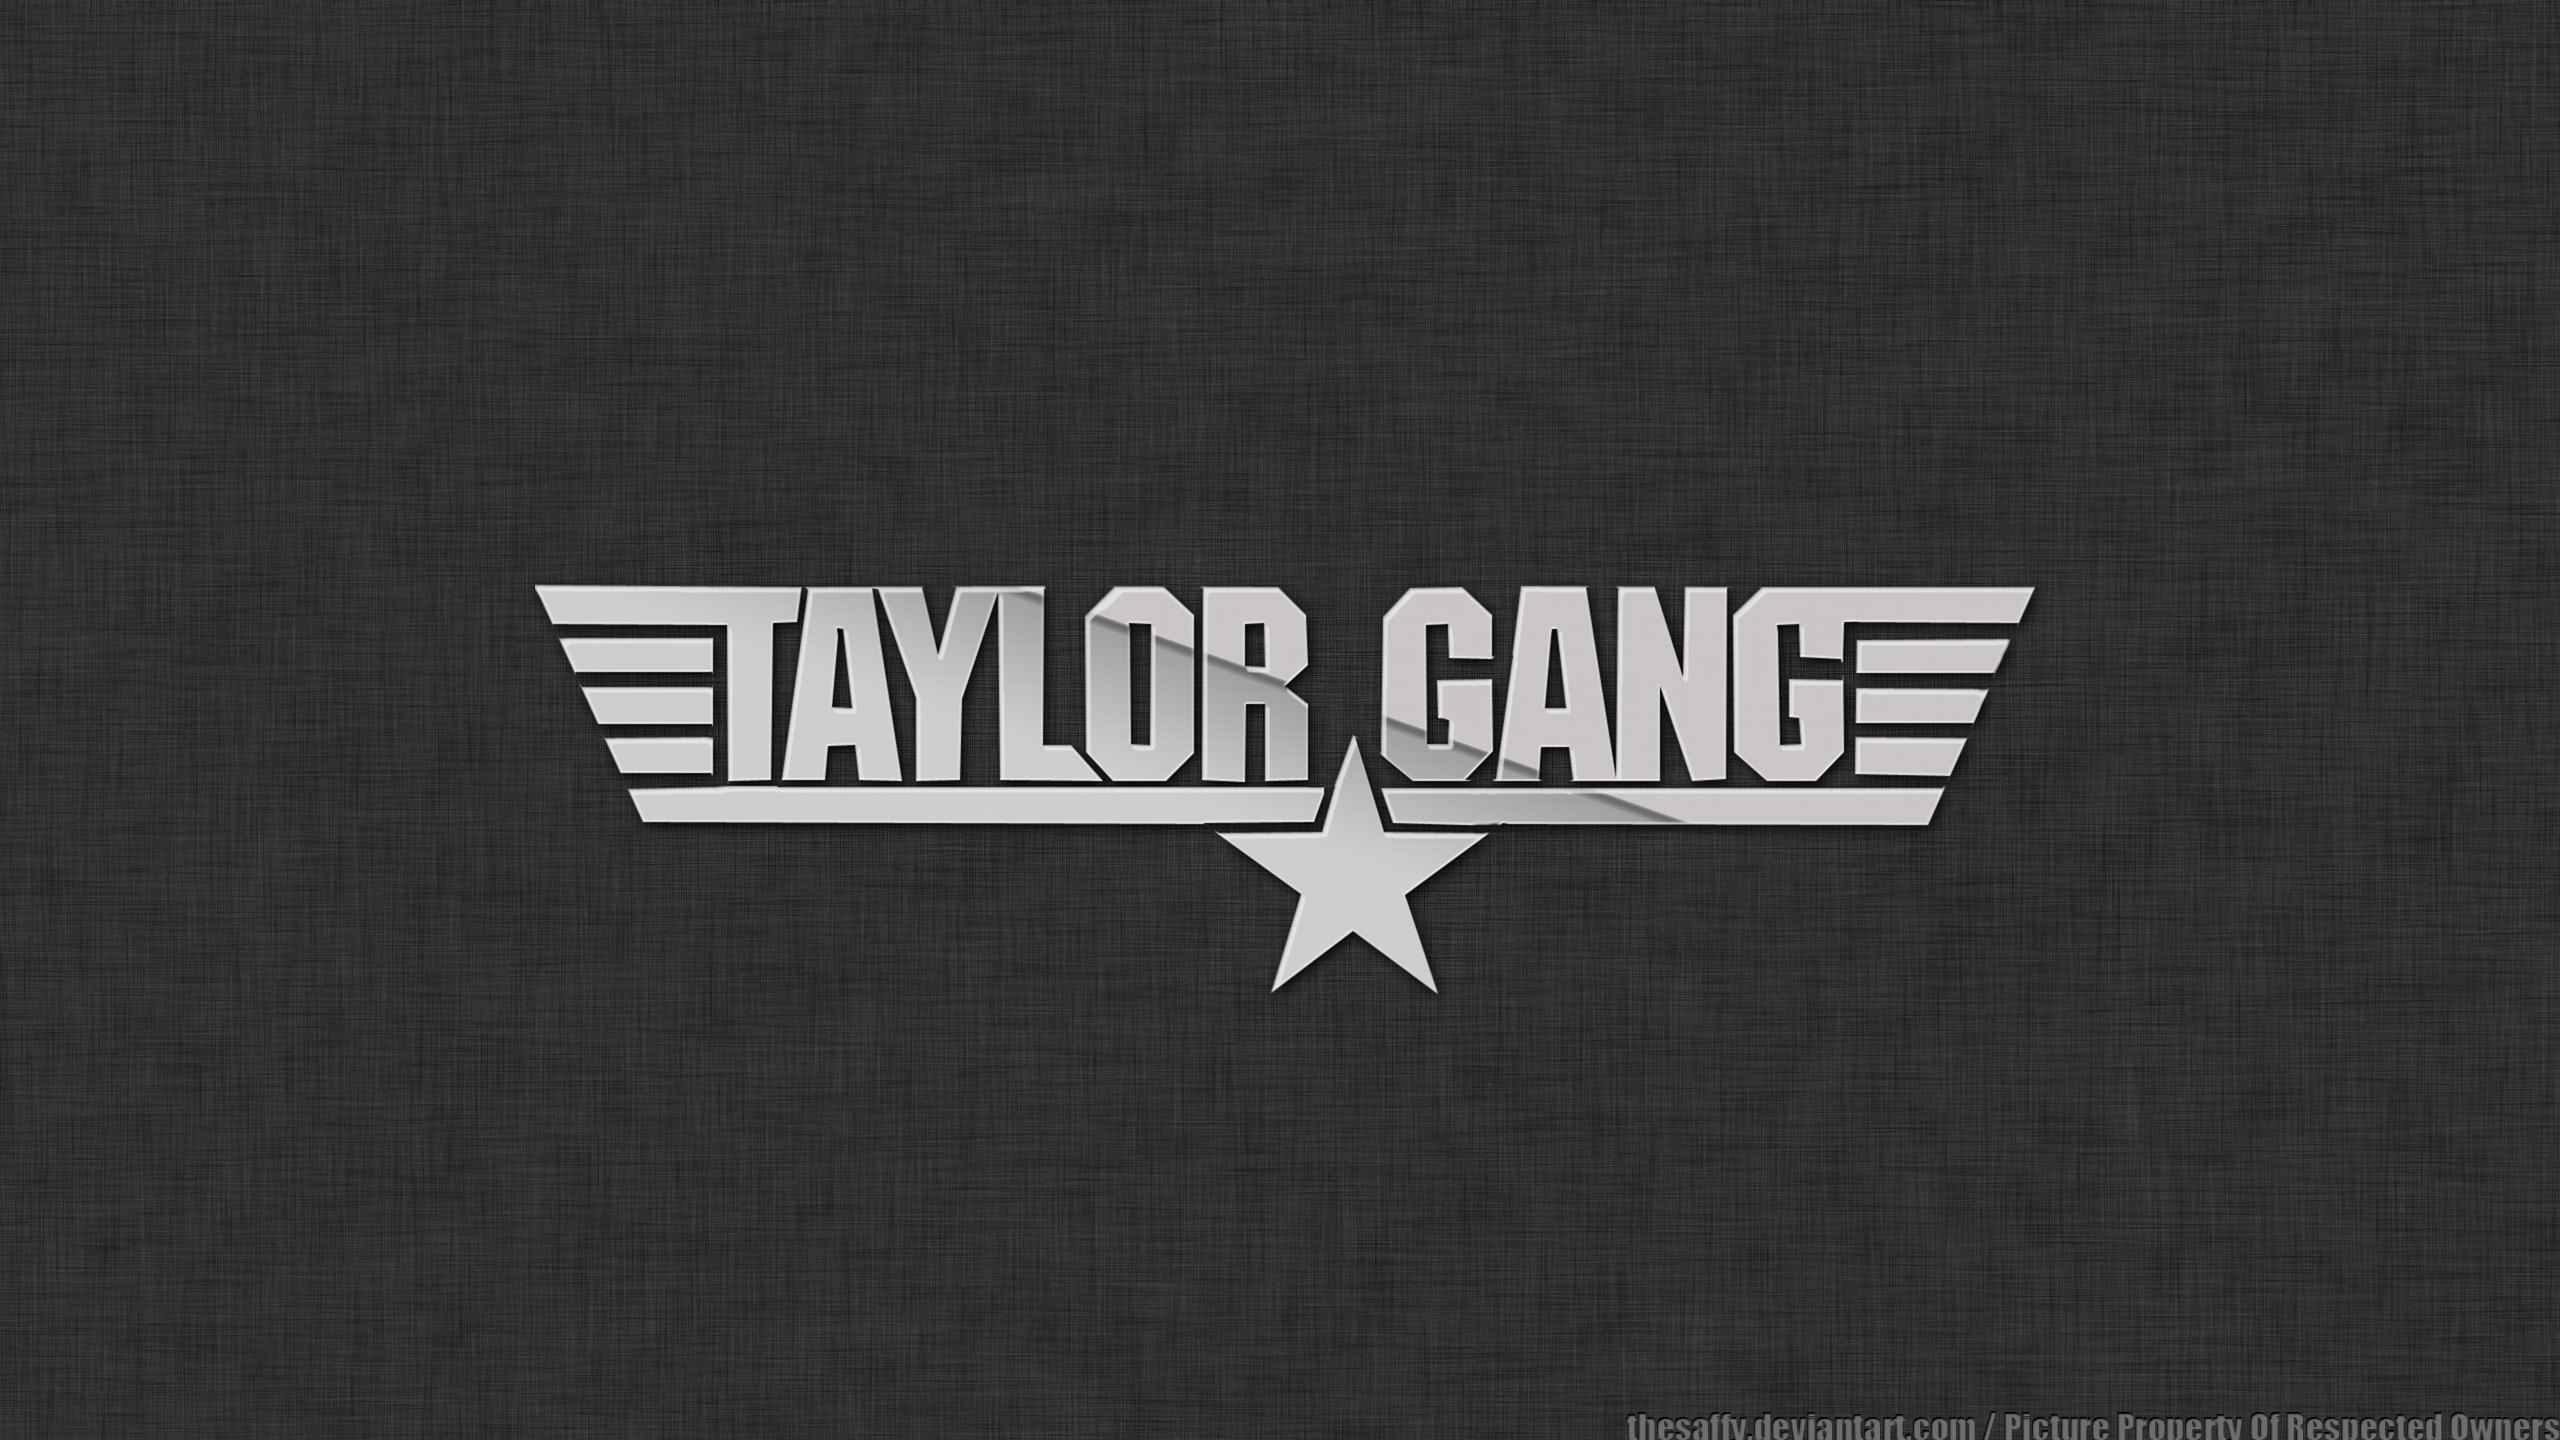 Rasta Taylor Gang 2530131 With Resolutions 25601440 Pixel 2560x1440